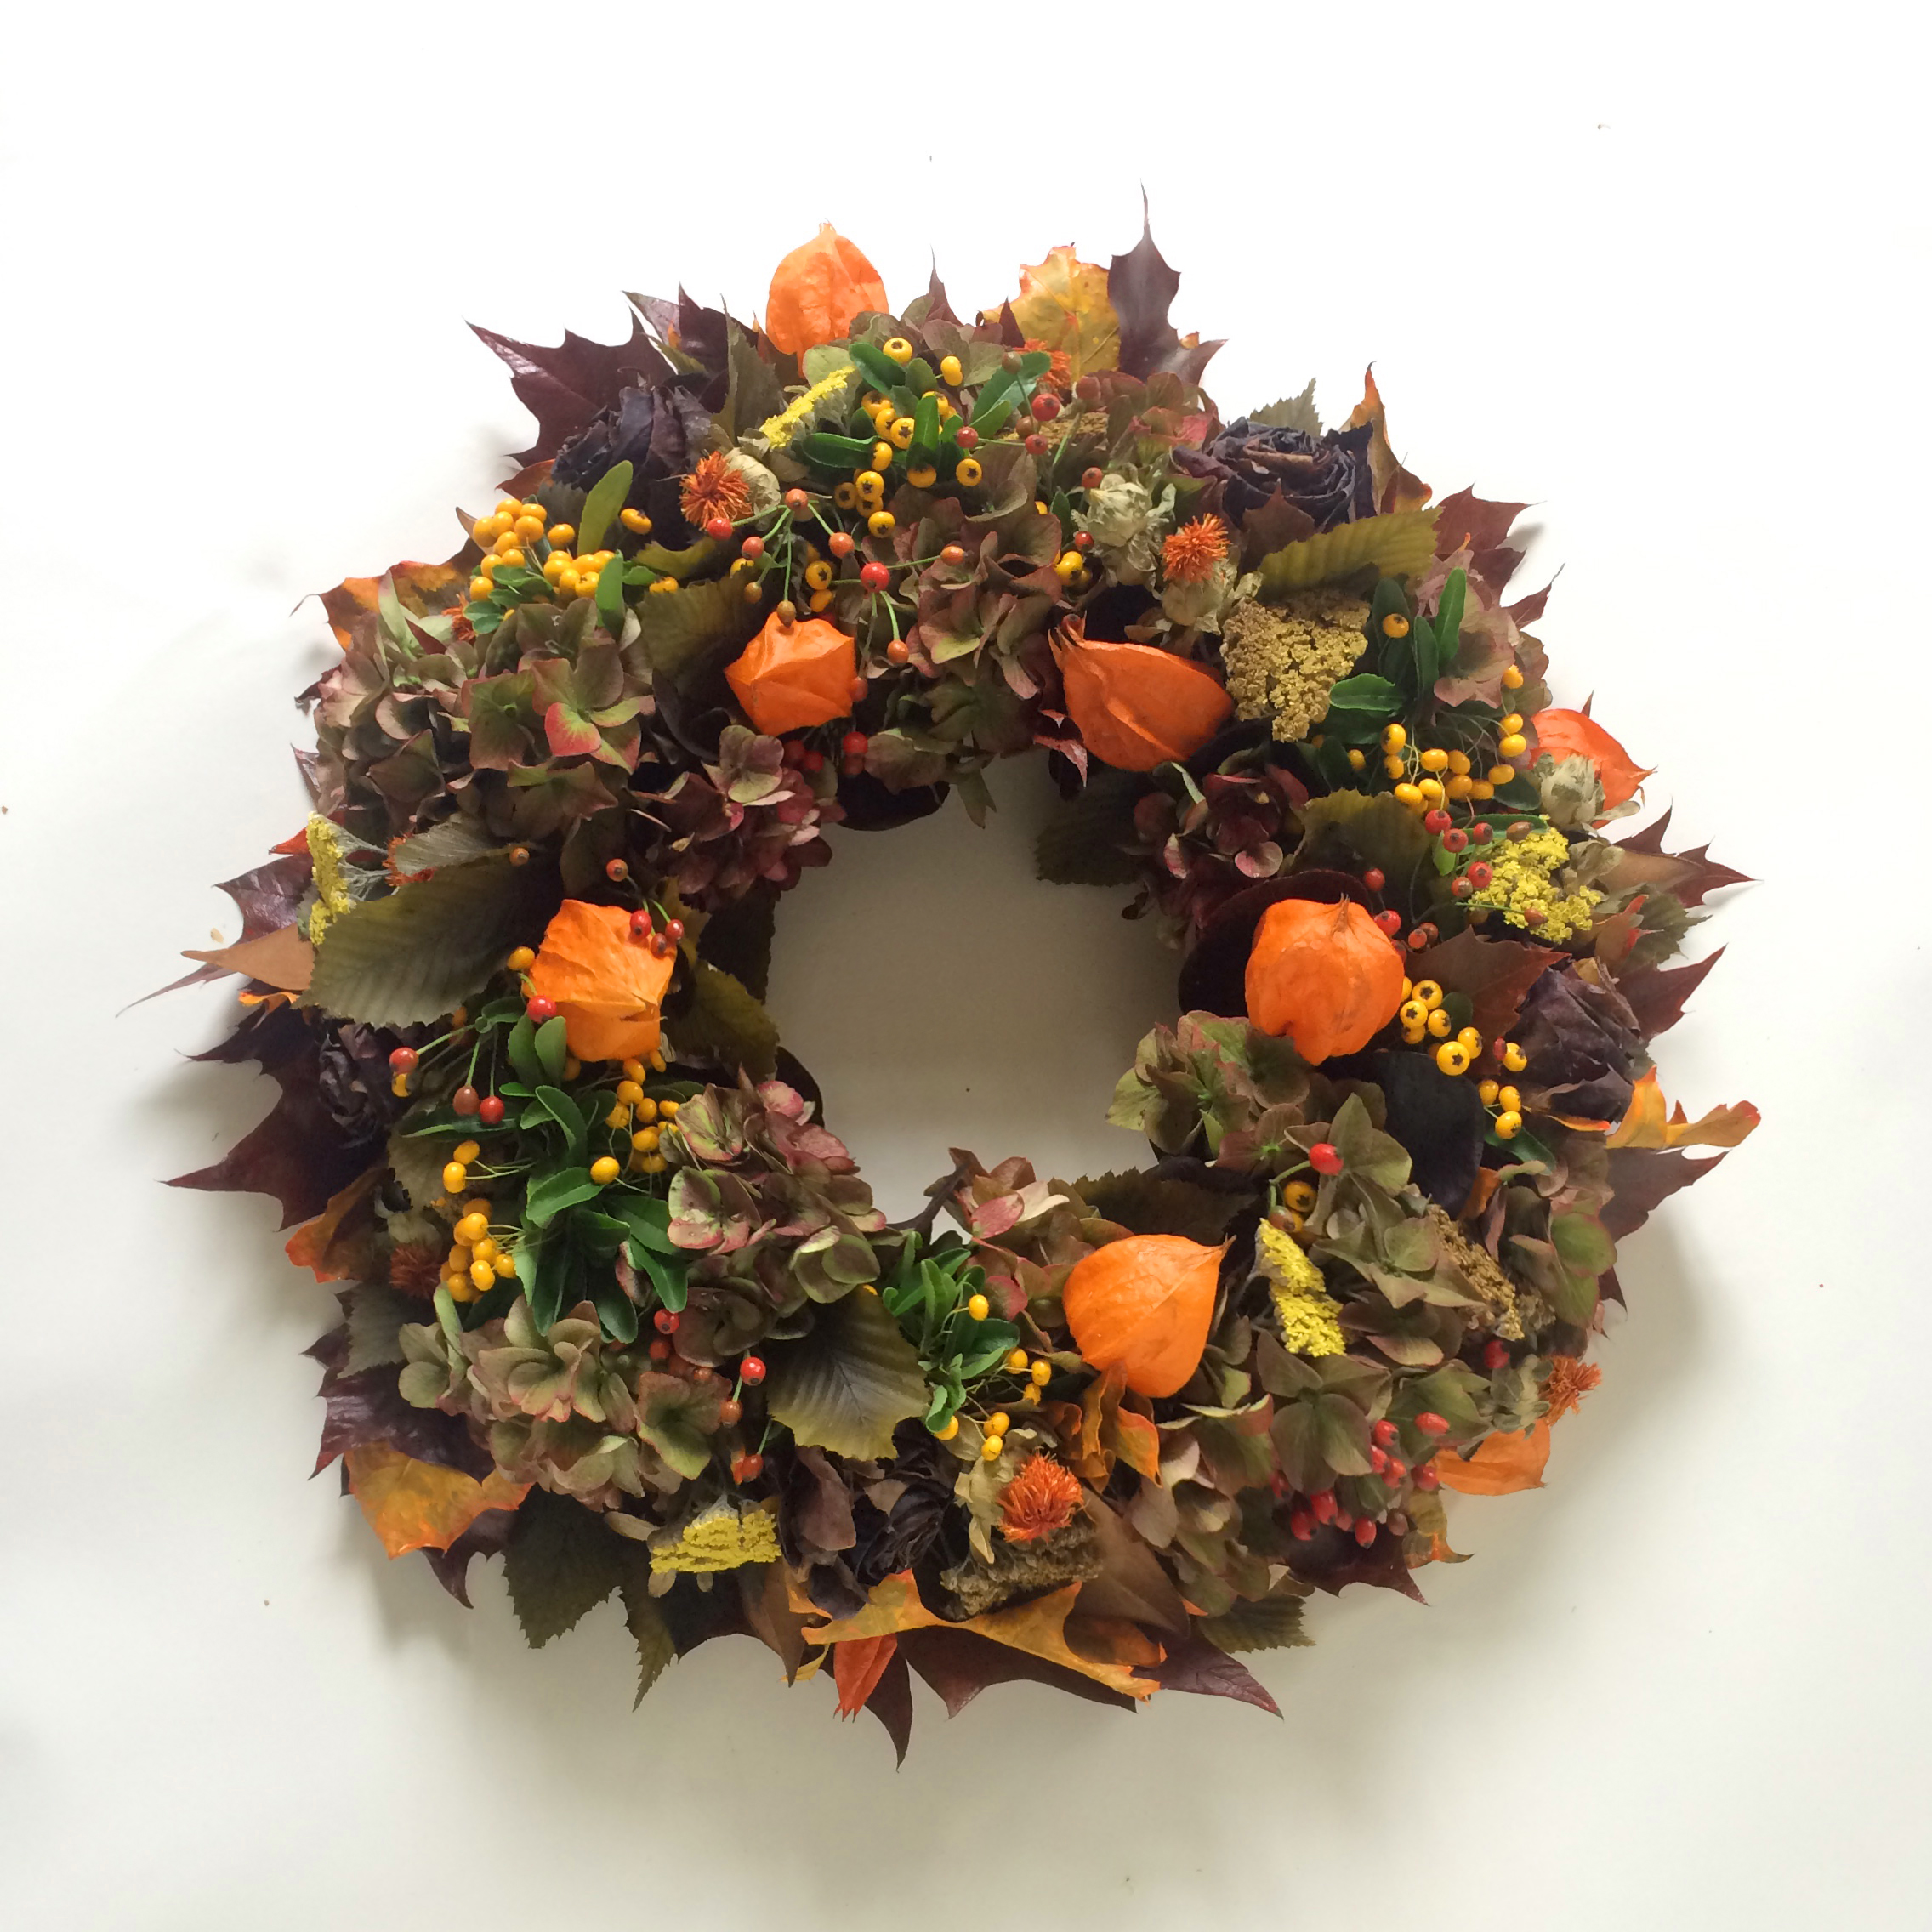 autumnwreathbright2017autumnwreathbright2017